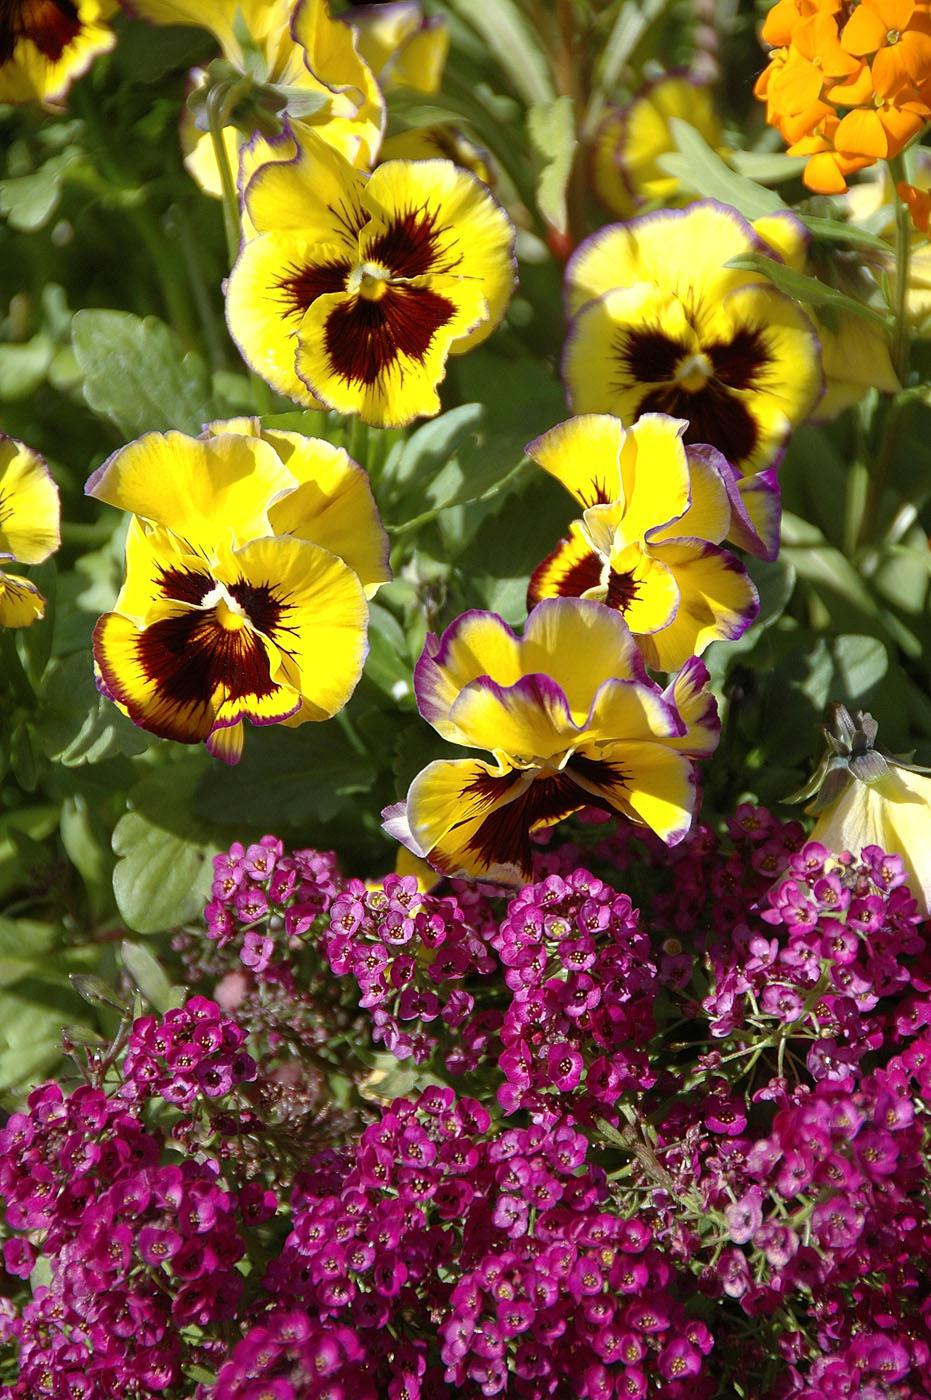 The Fizzy Lemonberry is a new pansy mix that is predominantly a cheerful yellow with a dark blotch and ruffled, picotee edges that are dark purple.